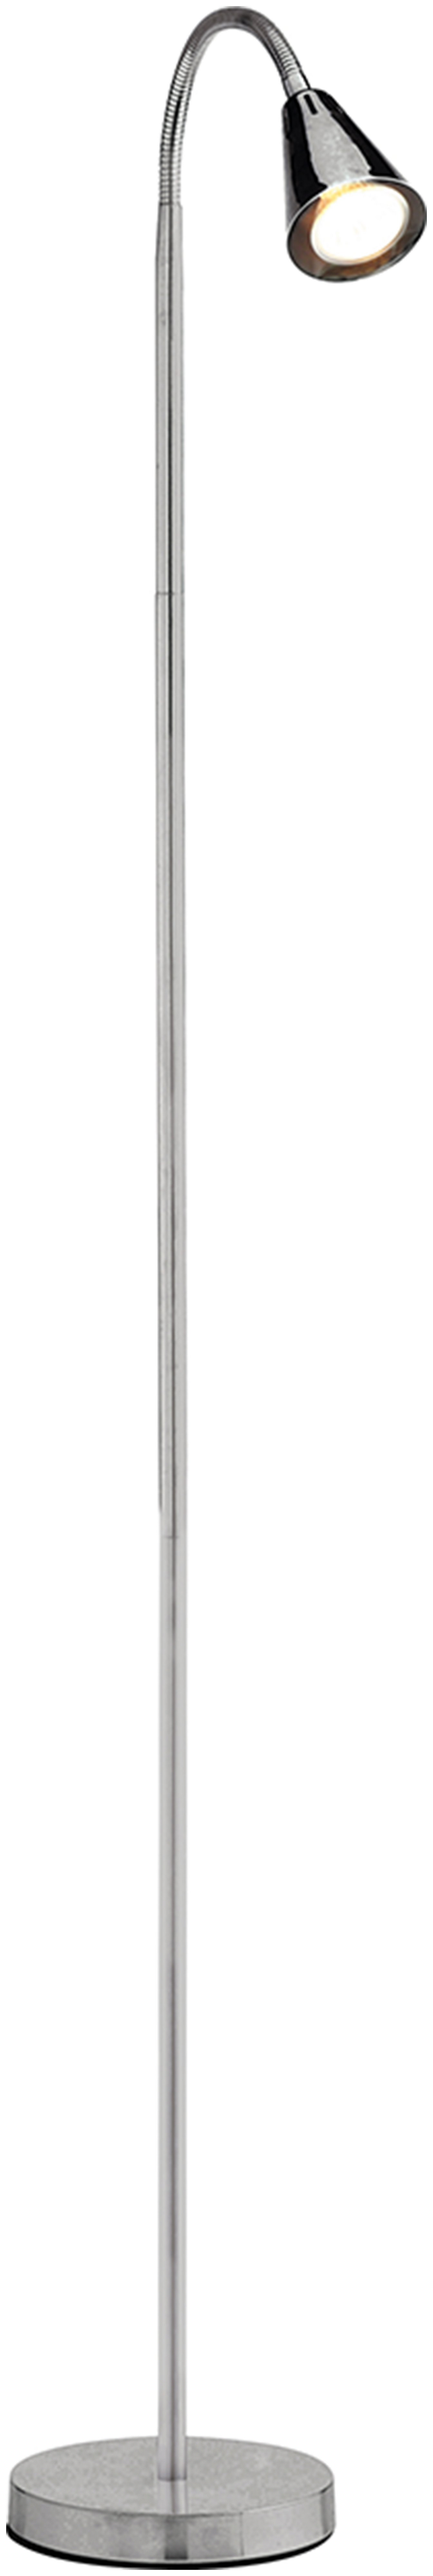 collection reading light floor lamp chrome